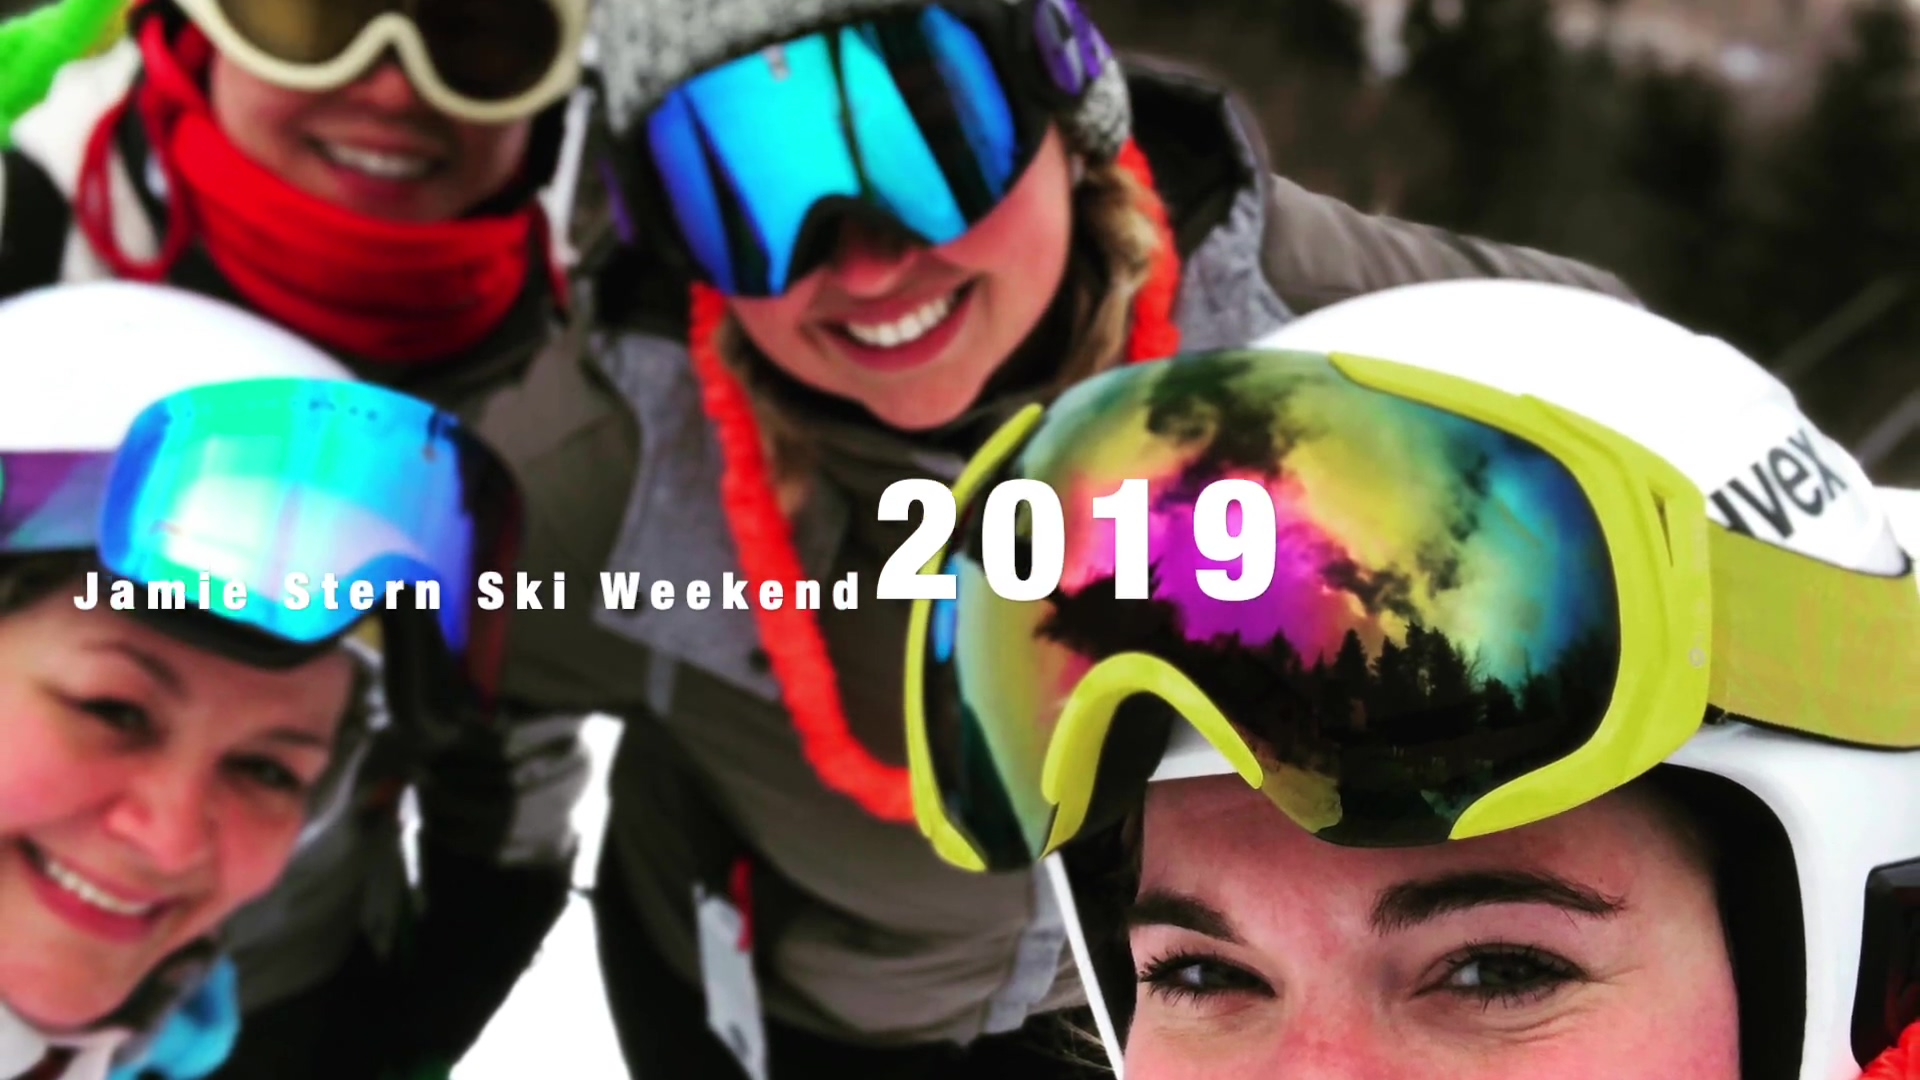 JS Ski Weekend 2019